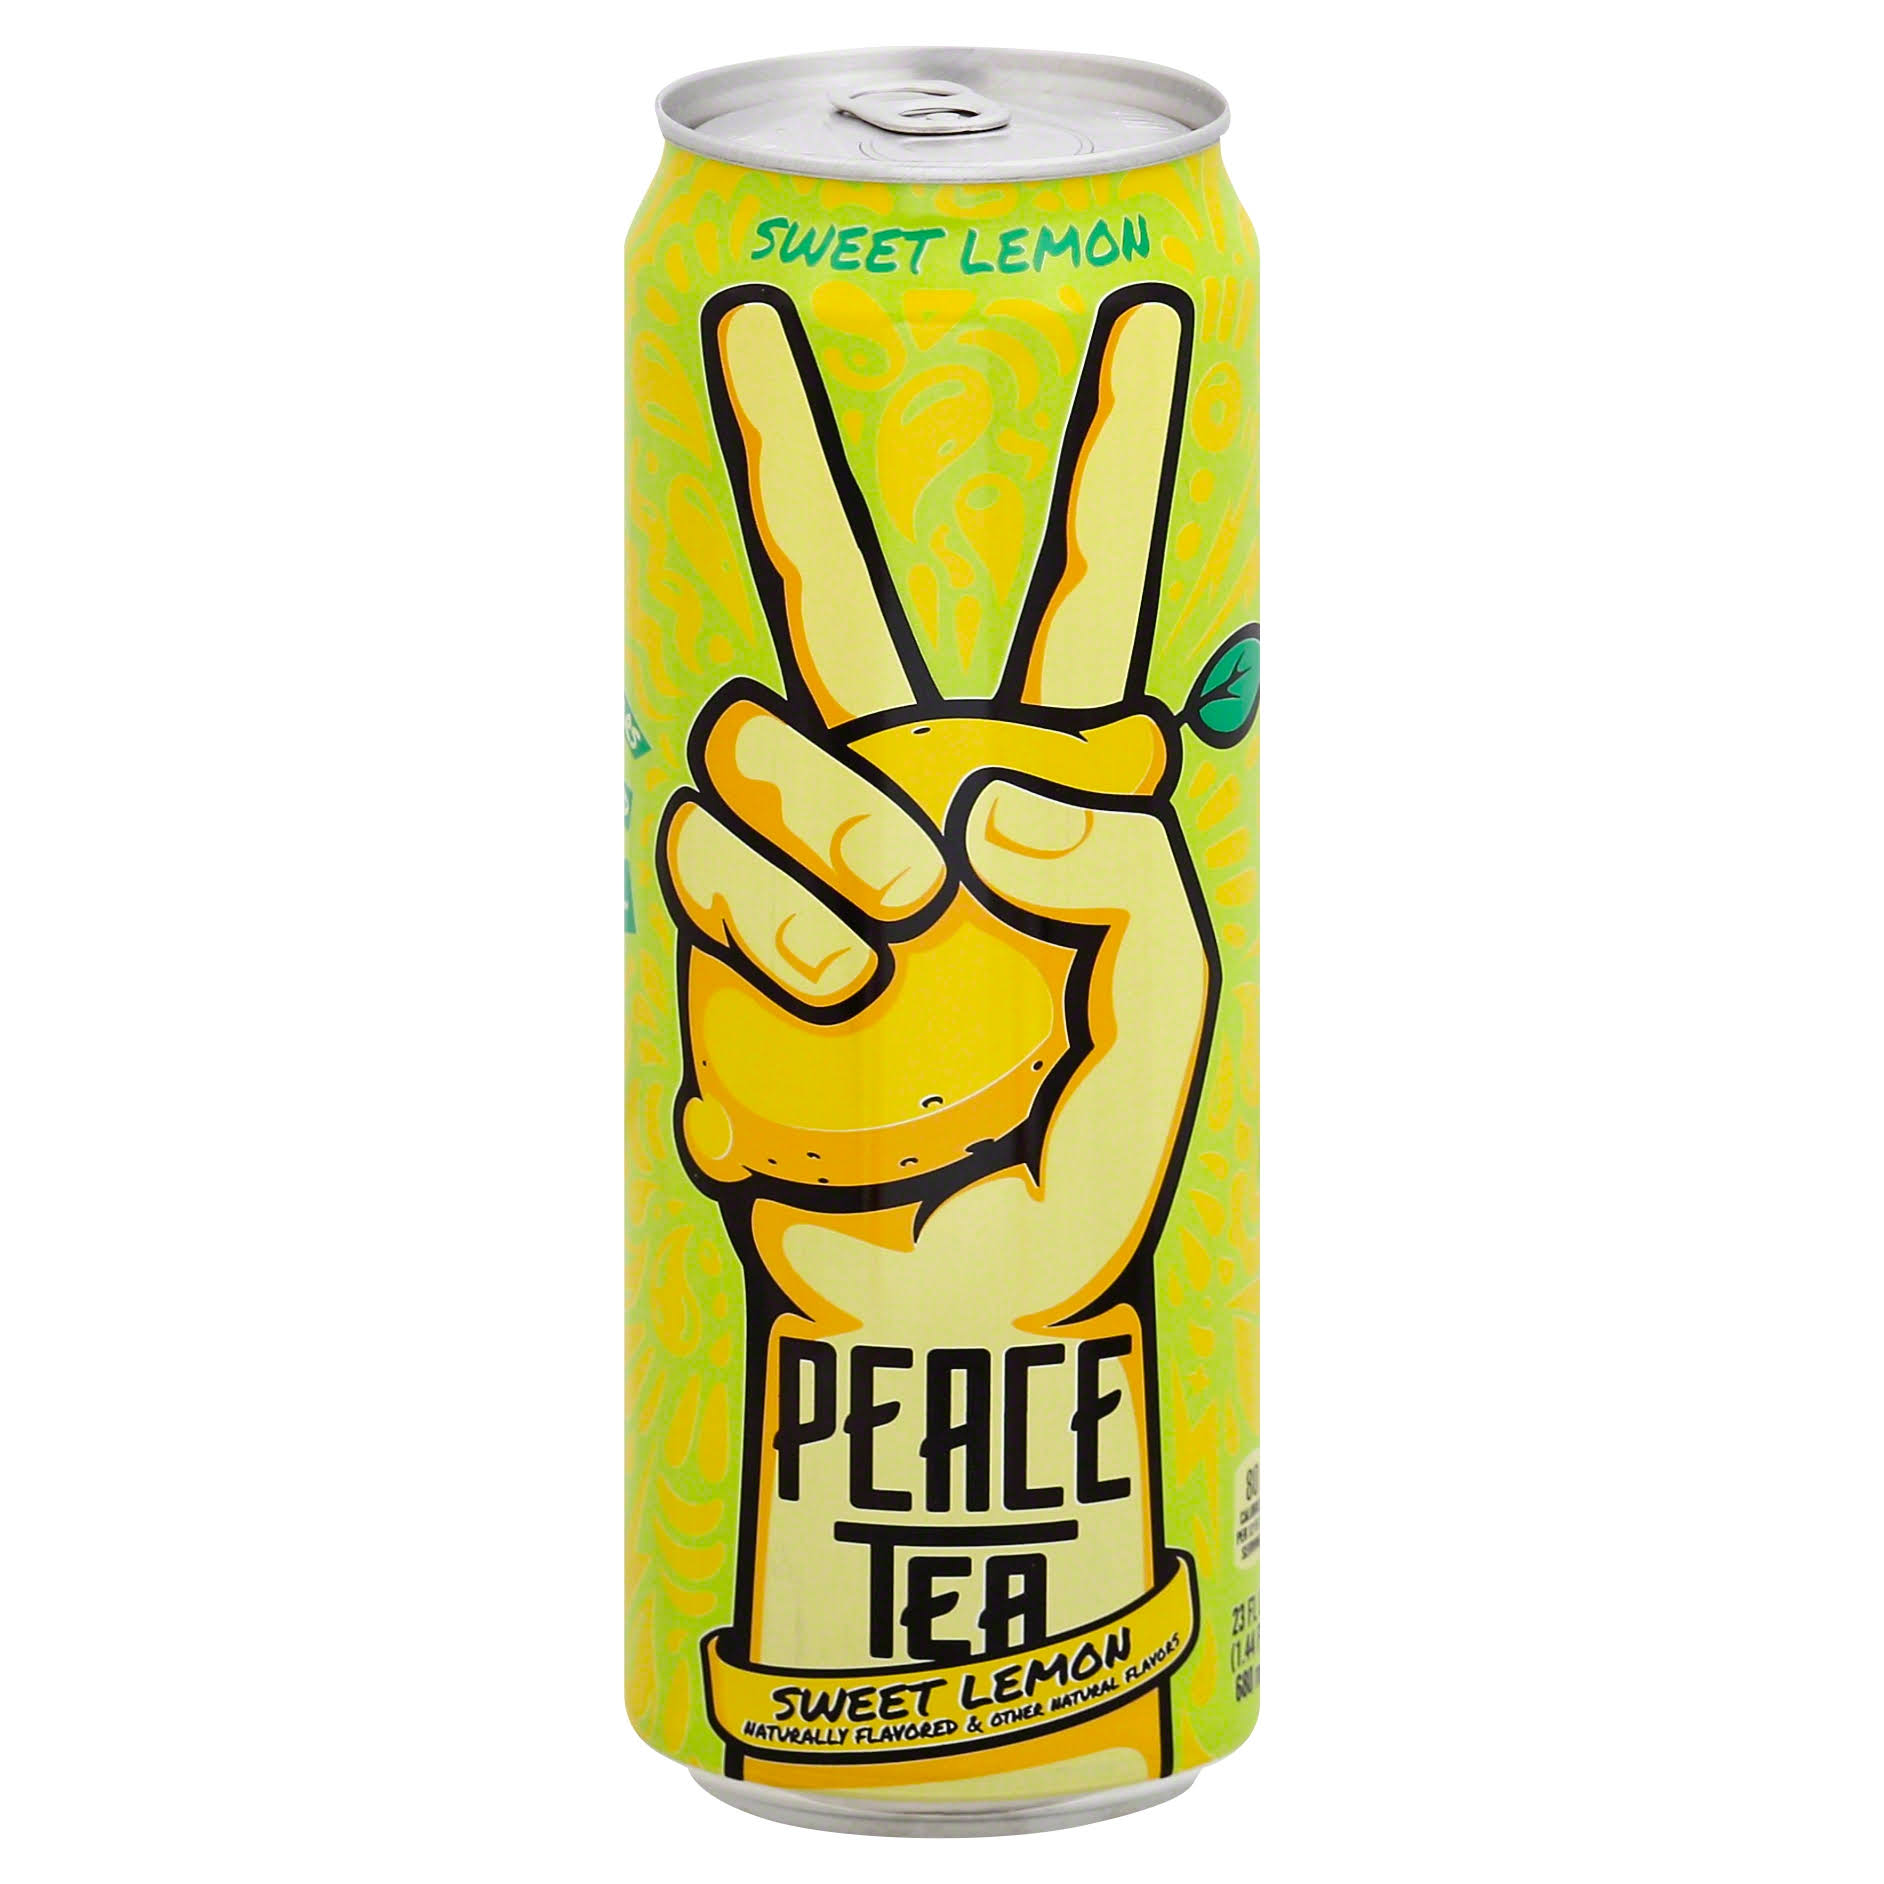 Peace Tea Sweet Lemon Tea - 23oz